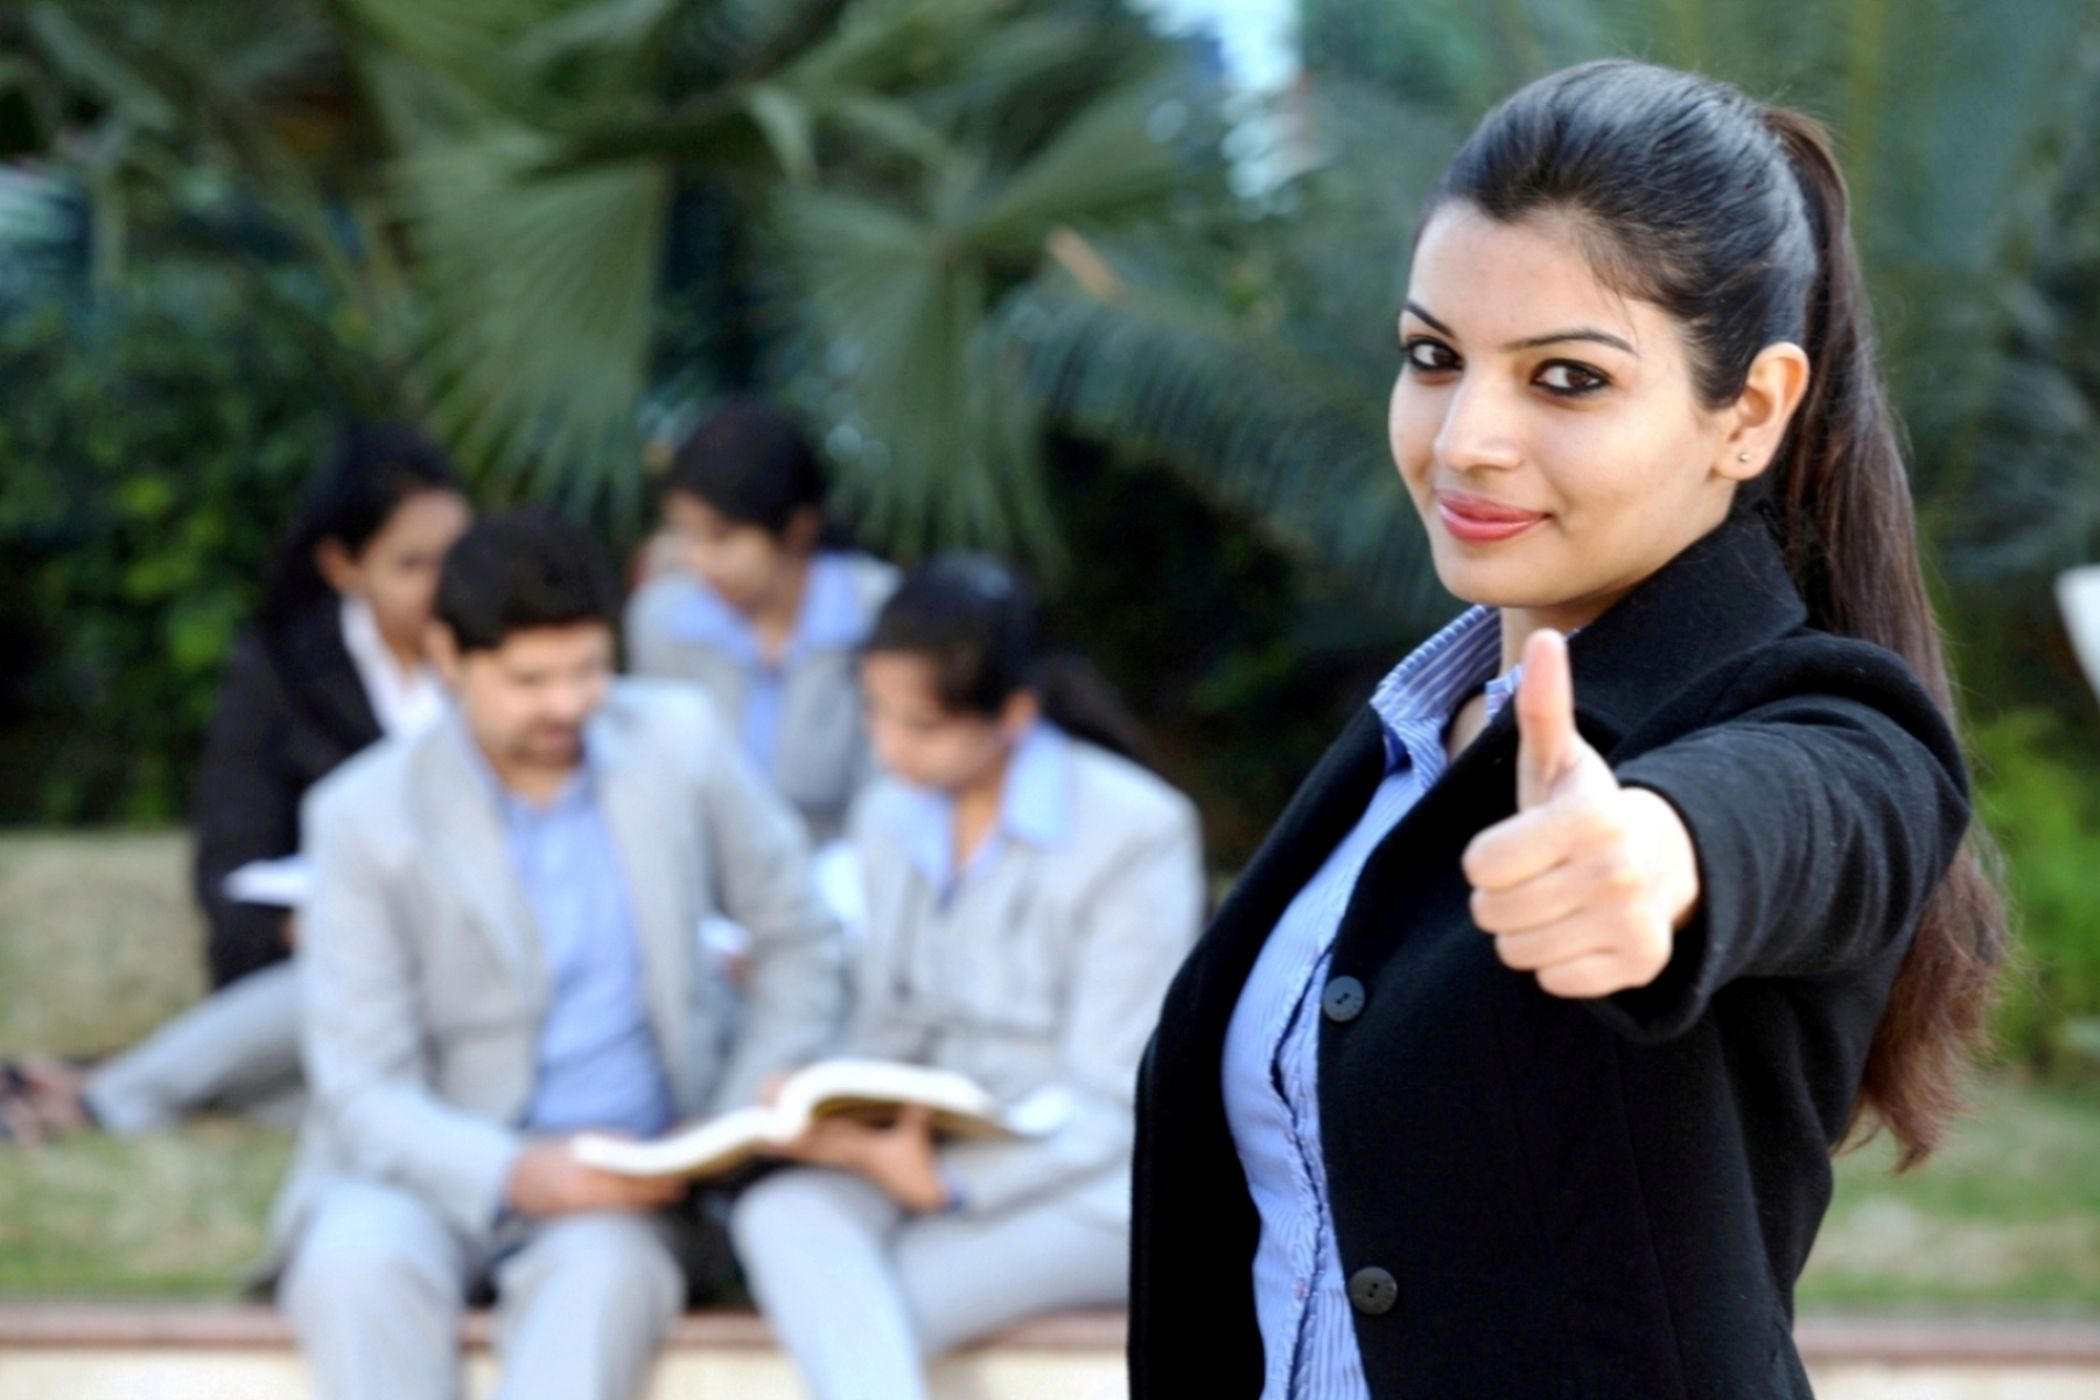 Research paper writing services delhi